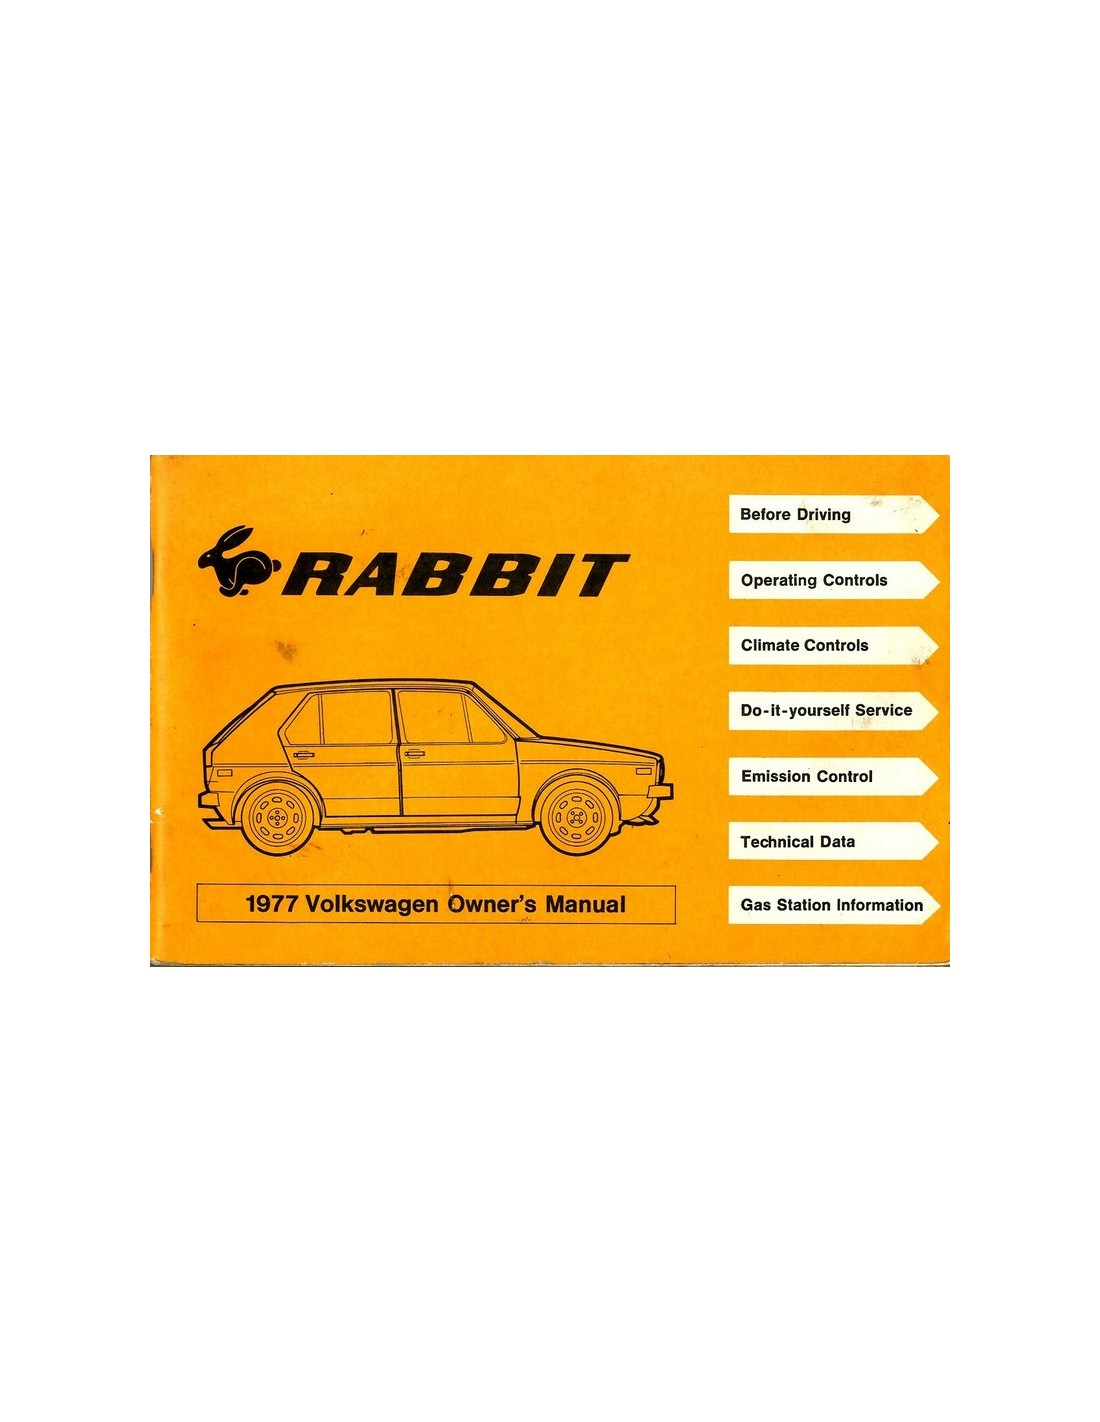 1977 Volkswagen Rabit Owners Manual English